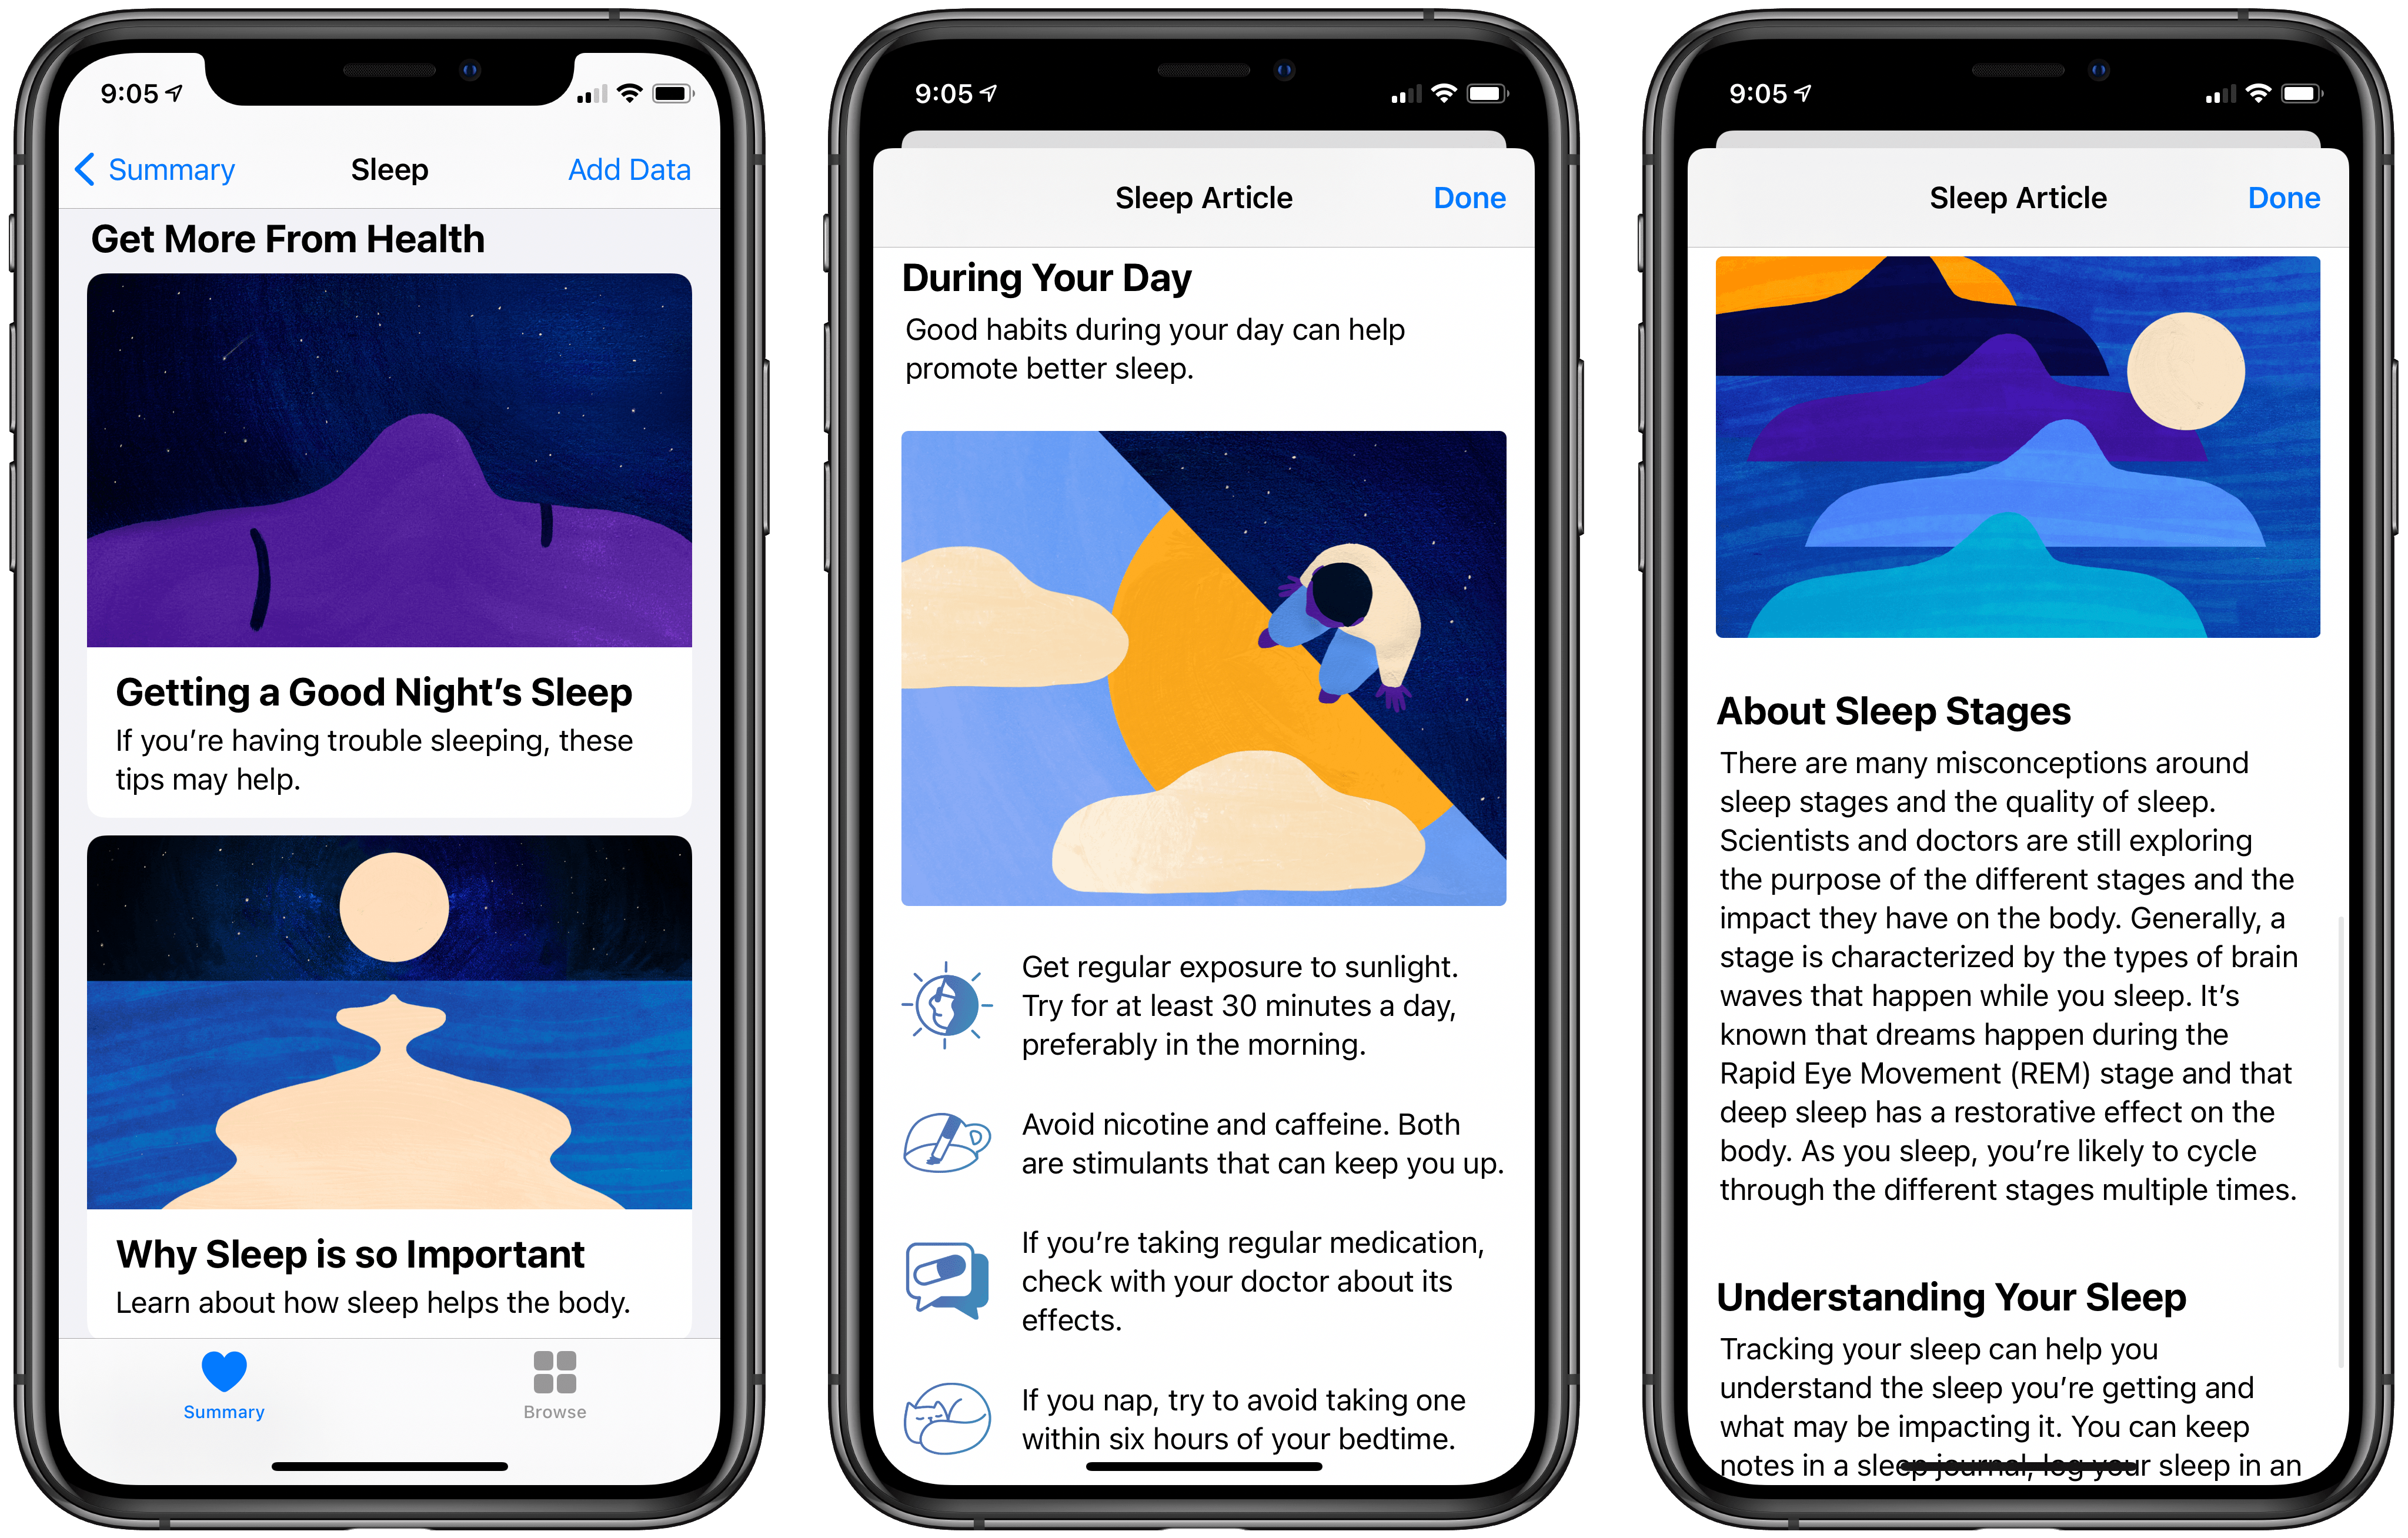 Articles on sleep in the Health app.